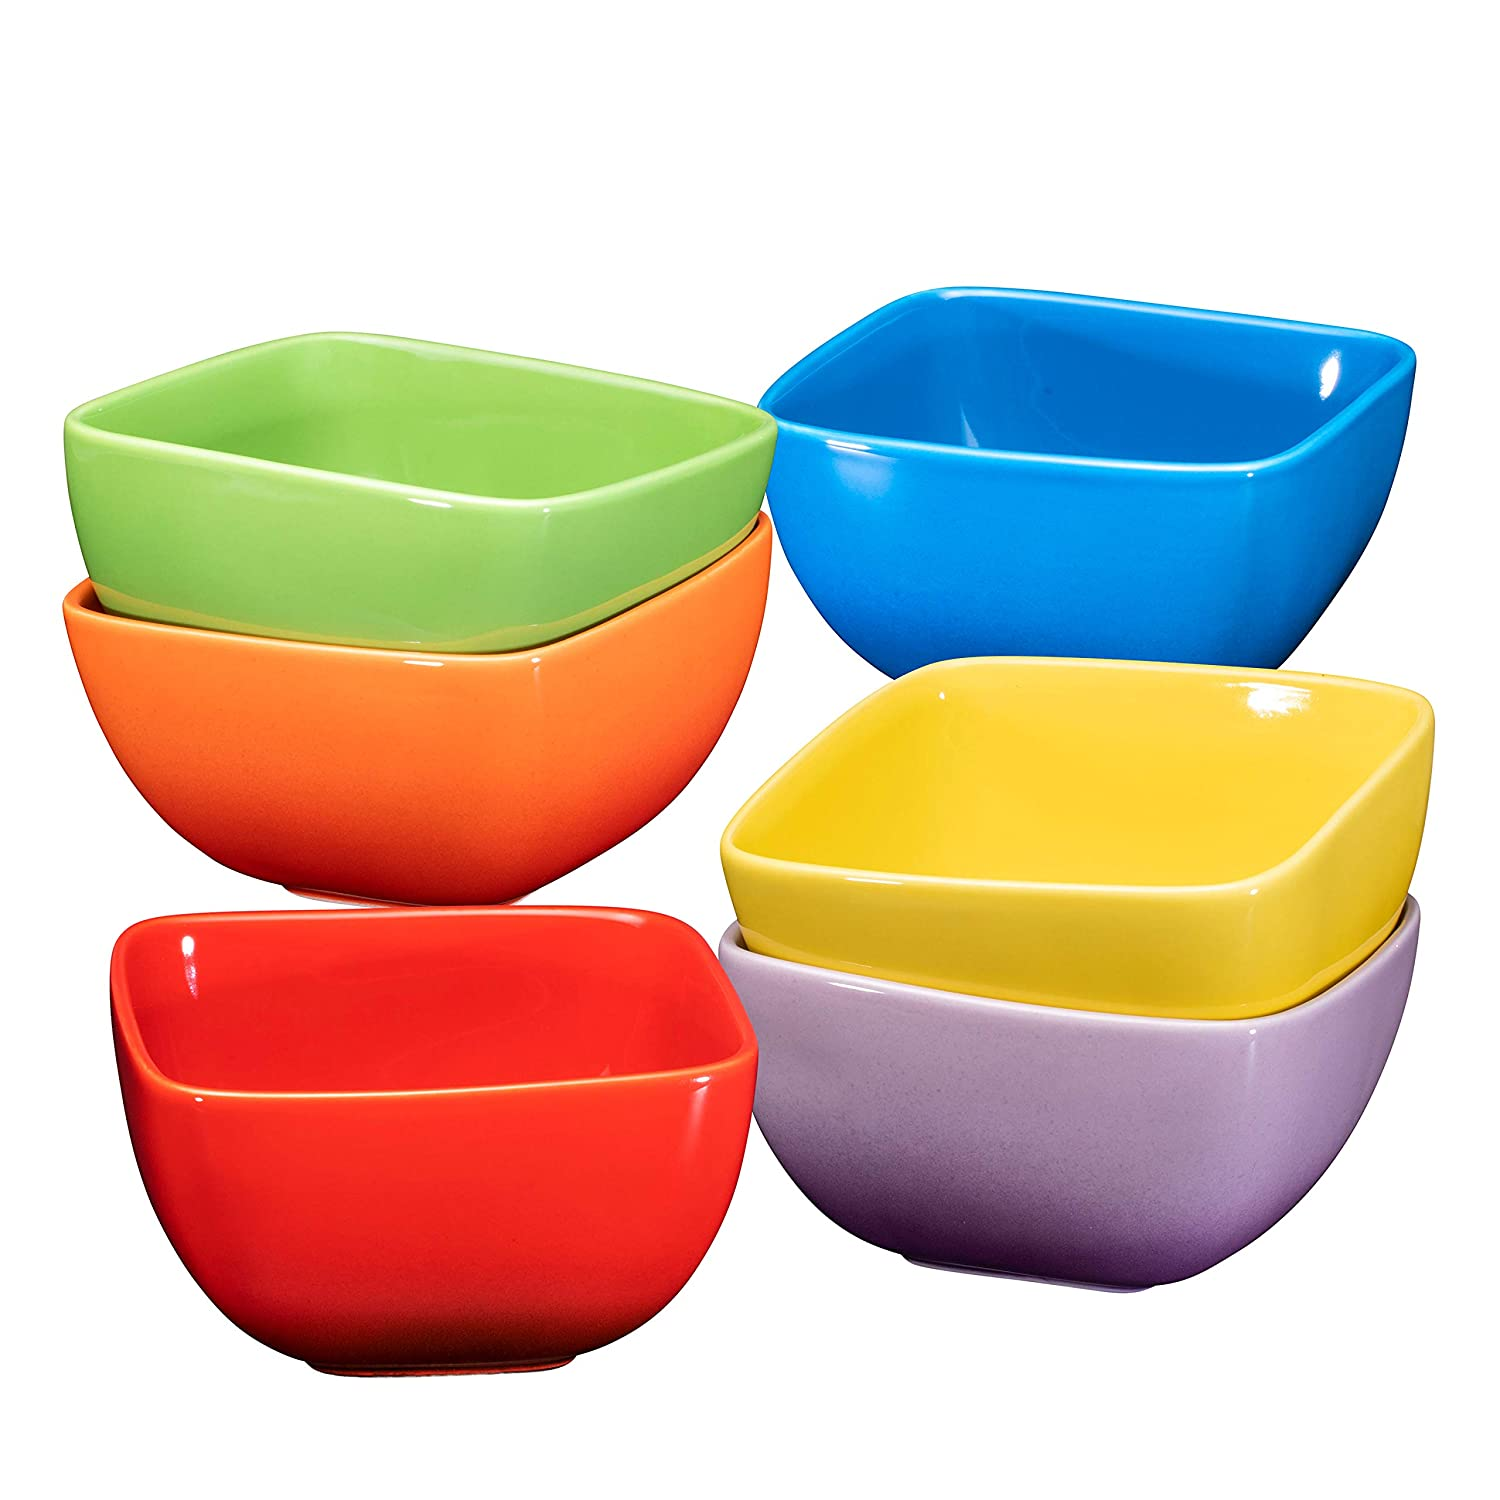 Bruntmor Large Porcelain Square Bowls - 26 Oz Durable Non-toxic Ceramic Bowls set of 6, Exceptional Multi-colored chip-resistant for Pasta, Berries, soup, Cereal Microwave Safe Appetizer Bowl